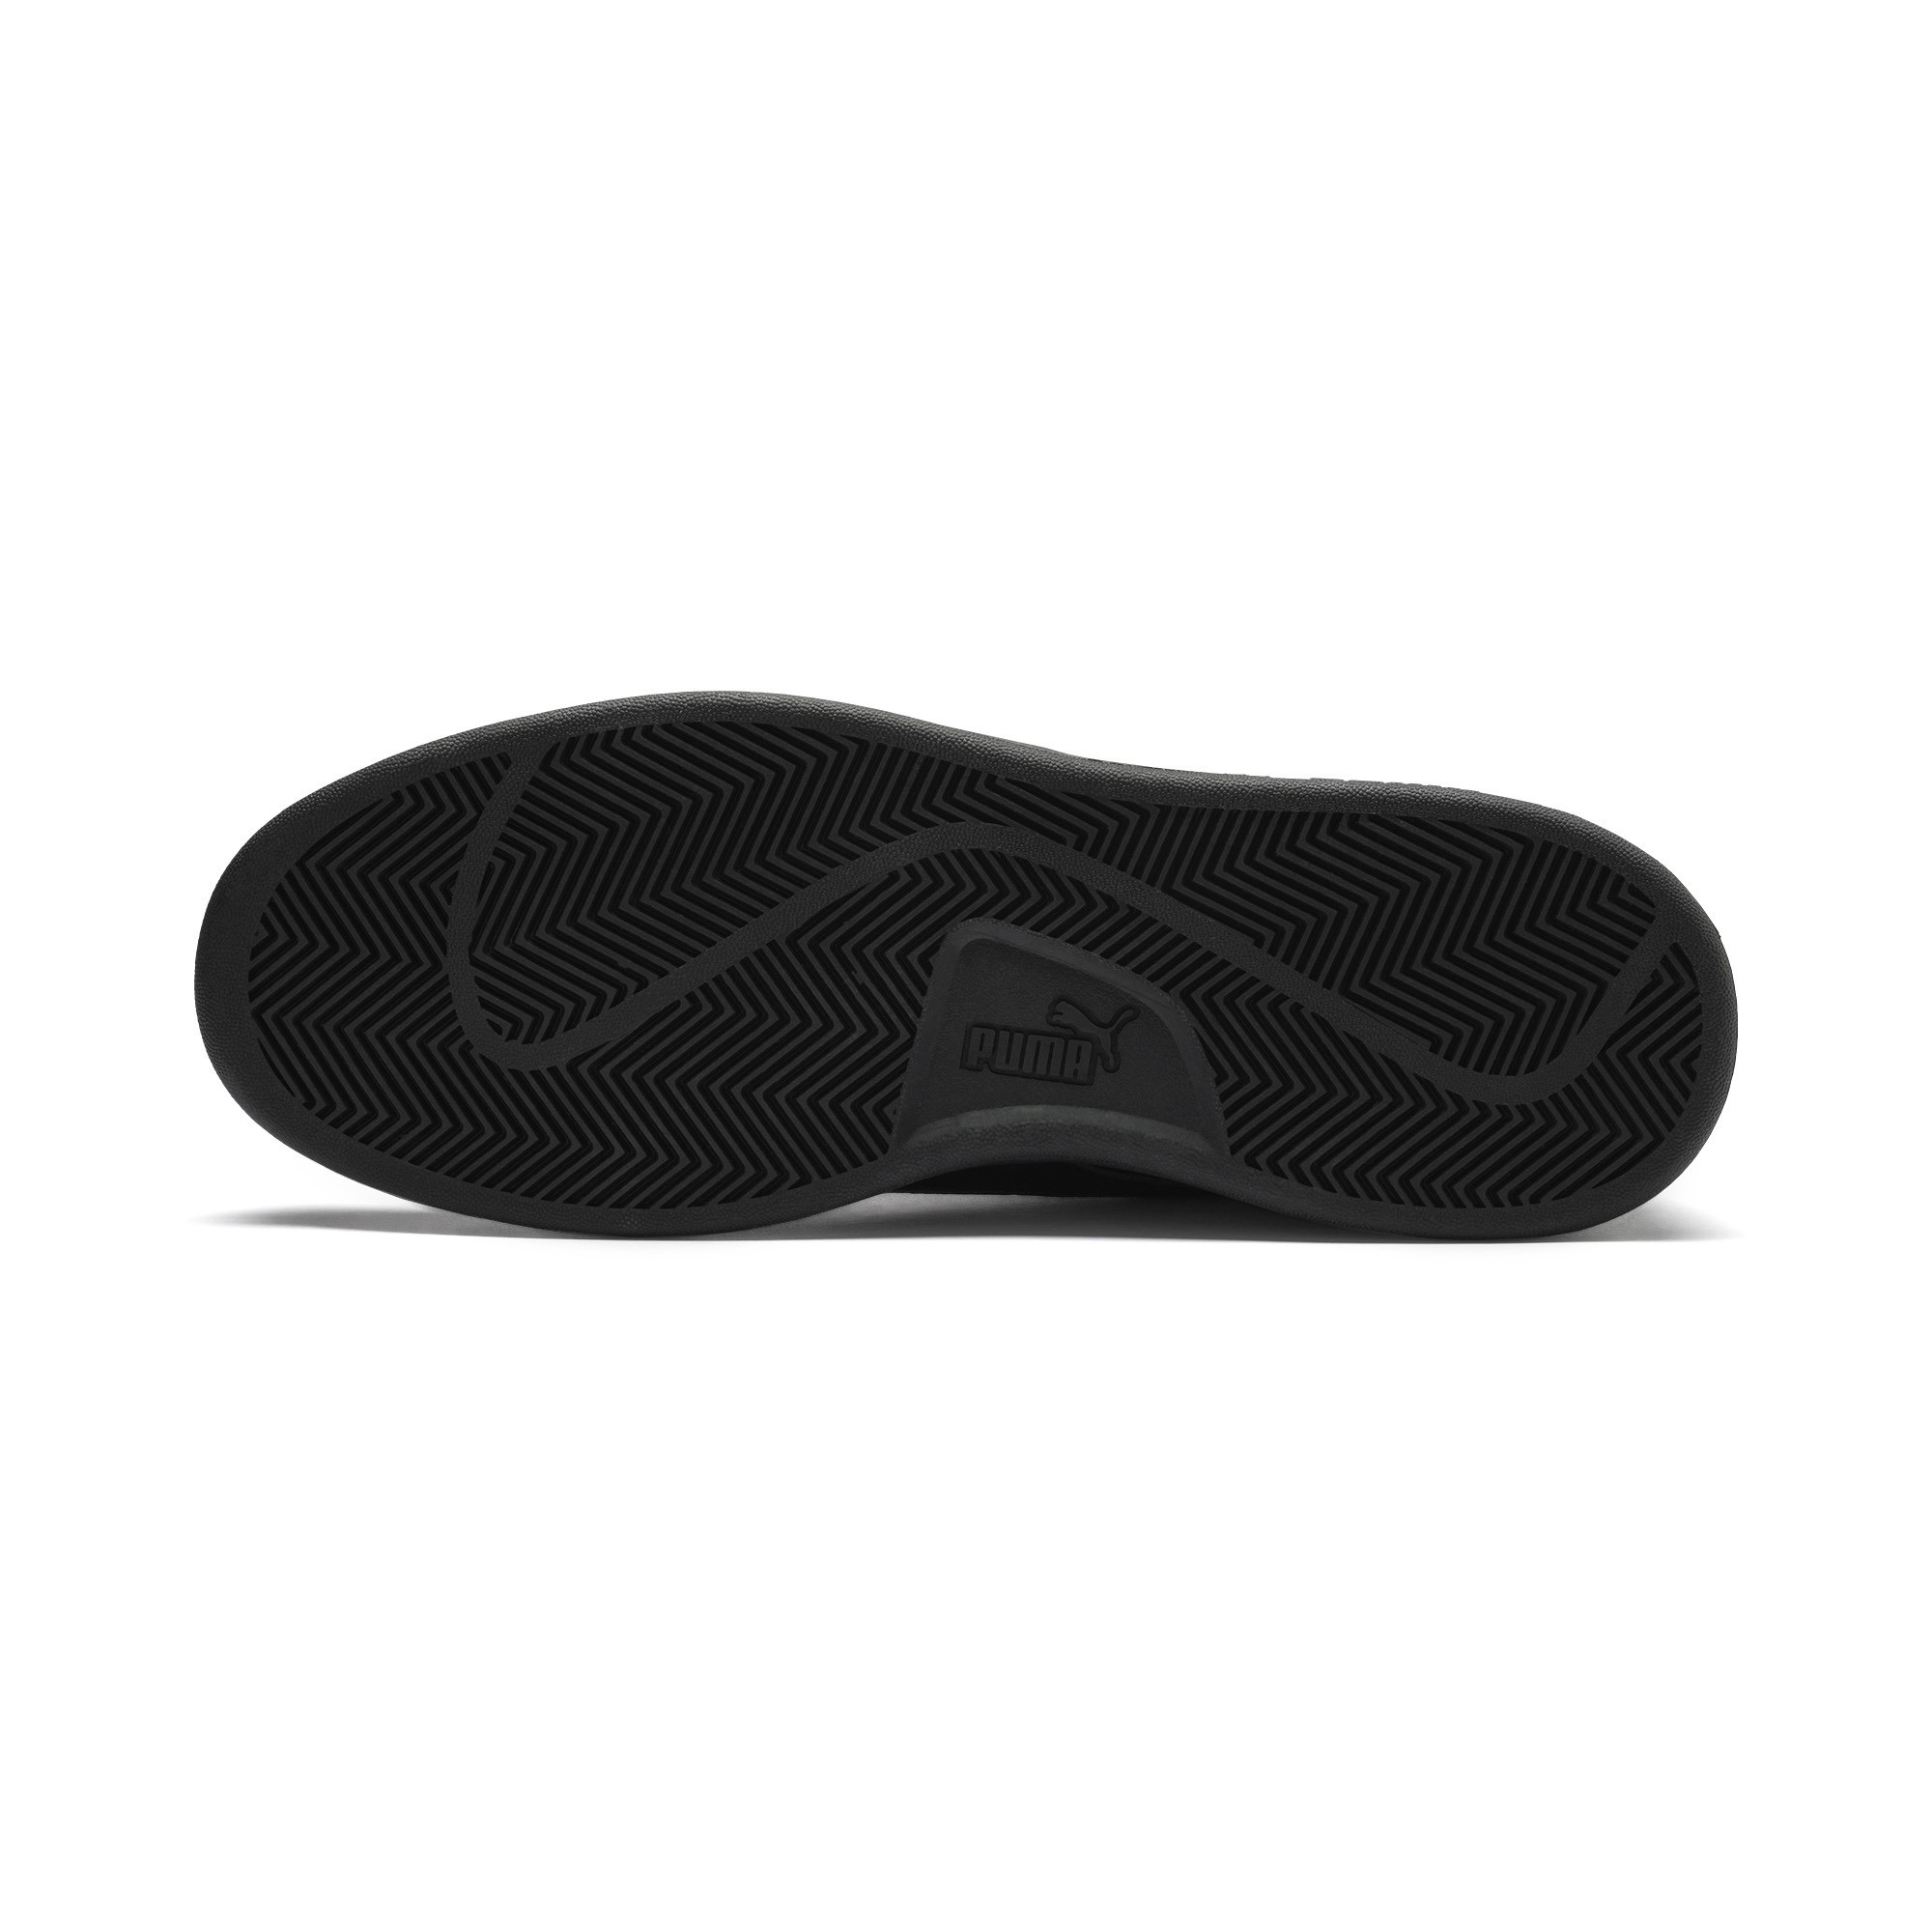 PUMA-PUMA-Smash-v2-Men-039-s-Sneakers-Men-Shoe-Basics thumbnail 24